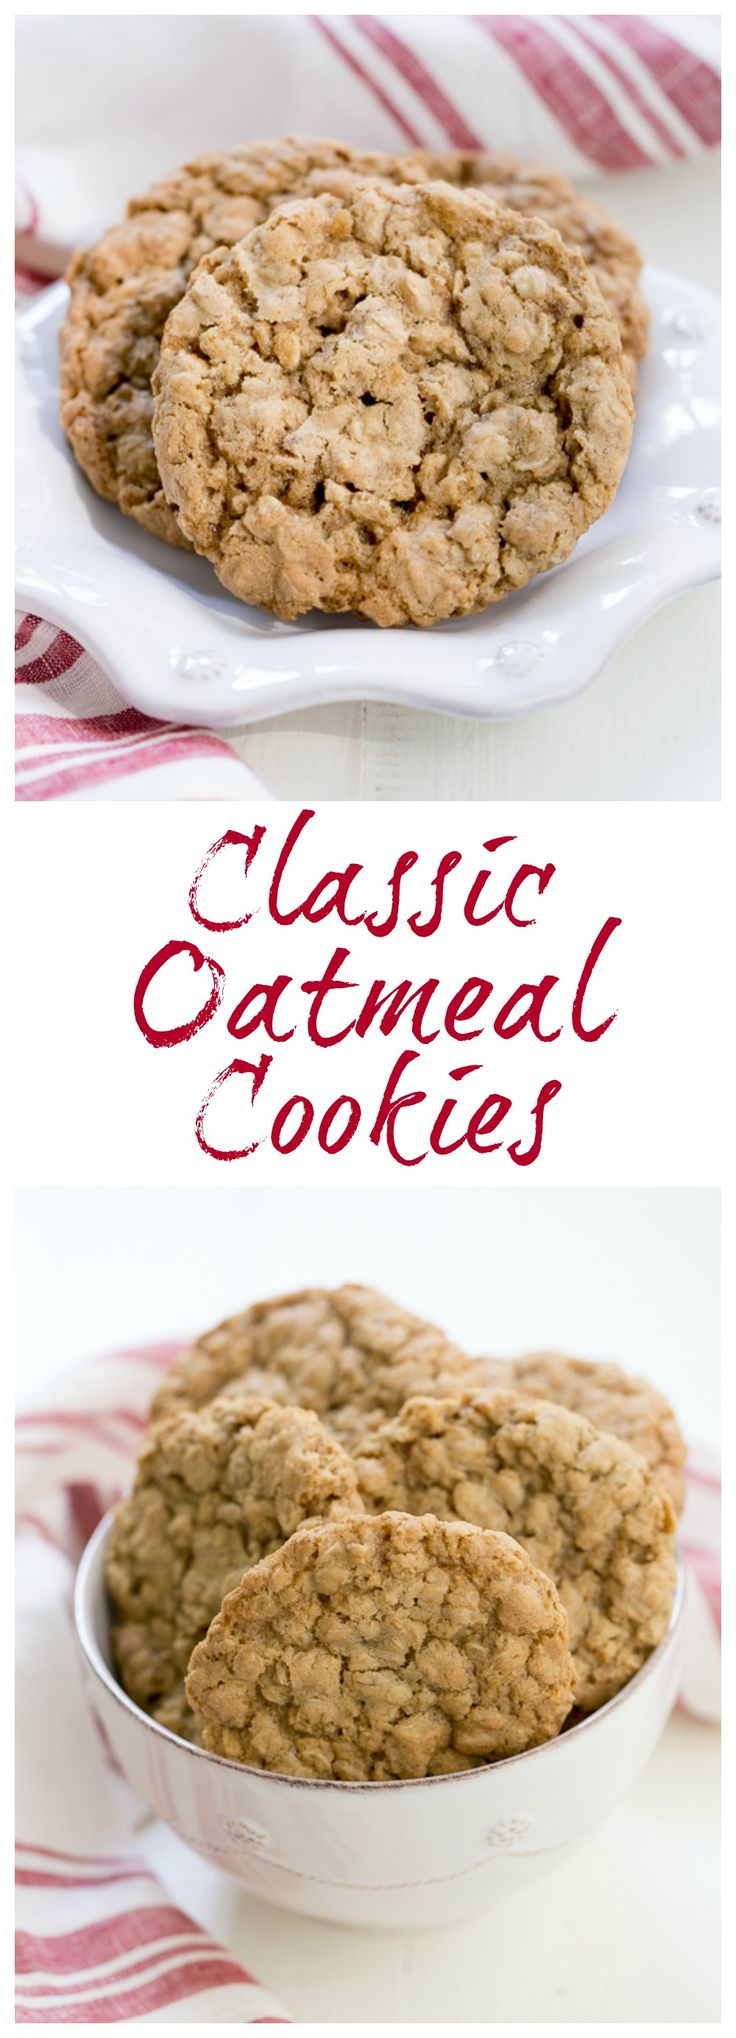 Classic Oatmeal Cookies   Chewy, buttery and irresistible  @lizzydo